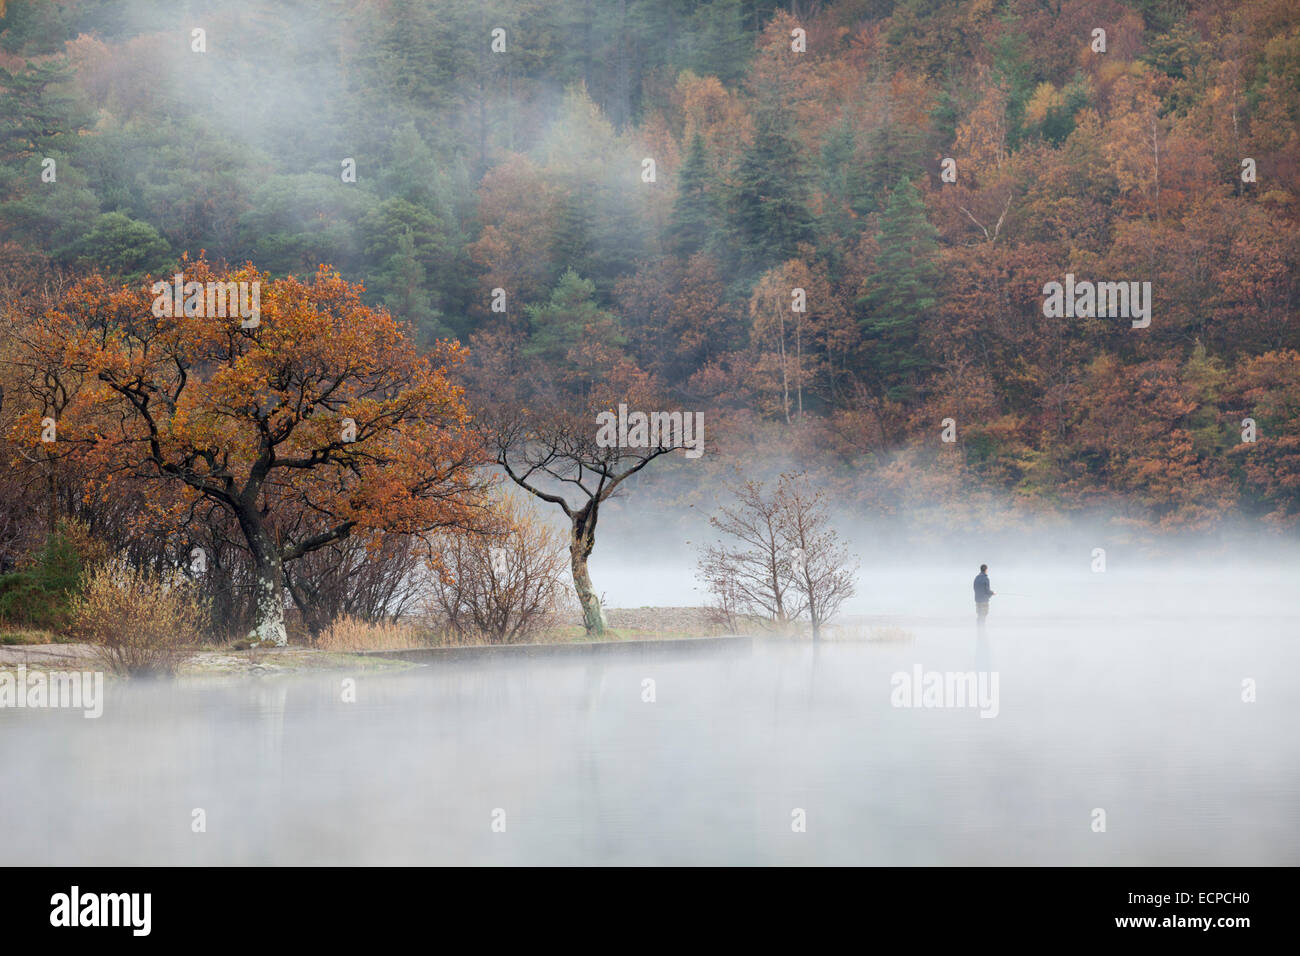 A fisherman in the mist on Crummock Water in the Lake District National Park - Stock Image